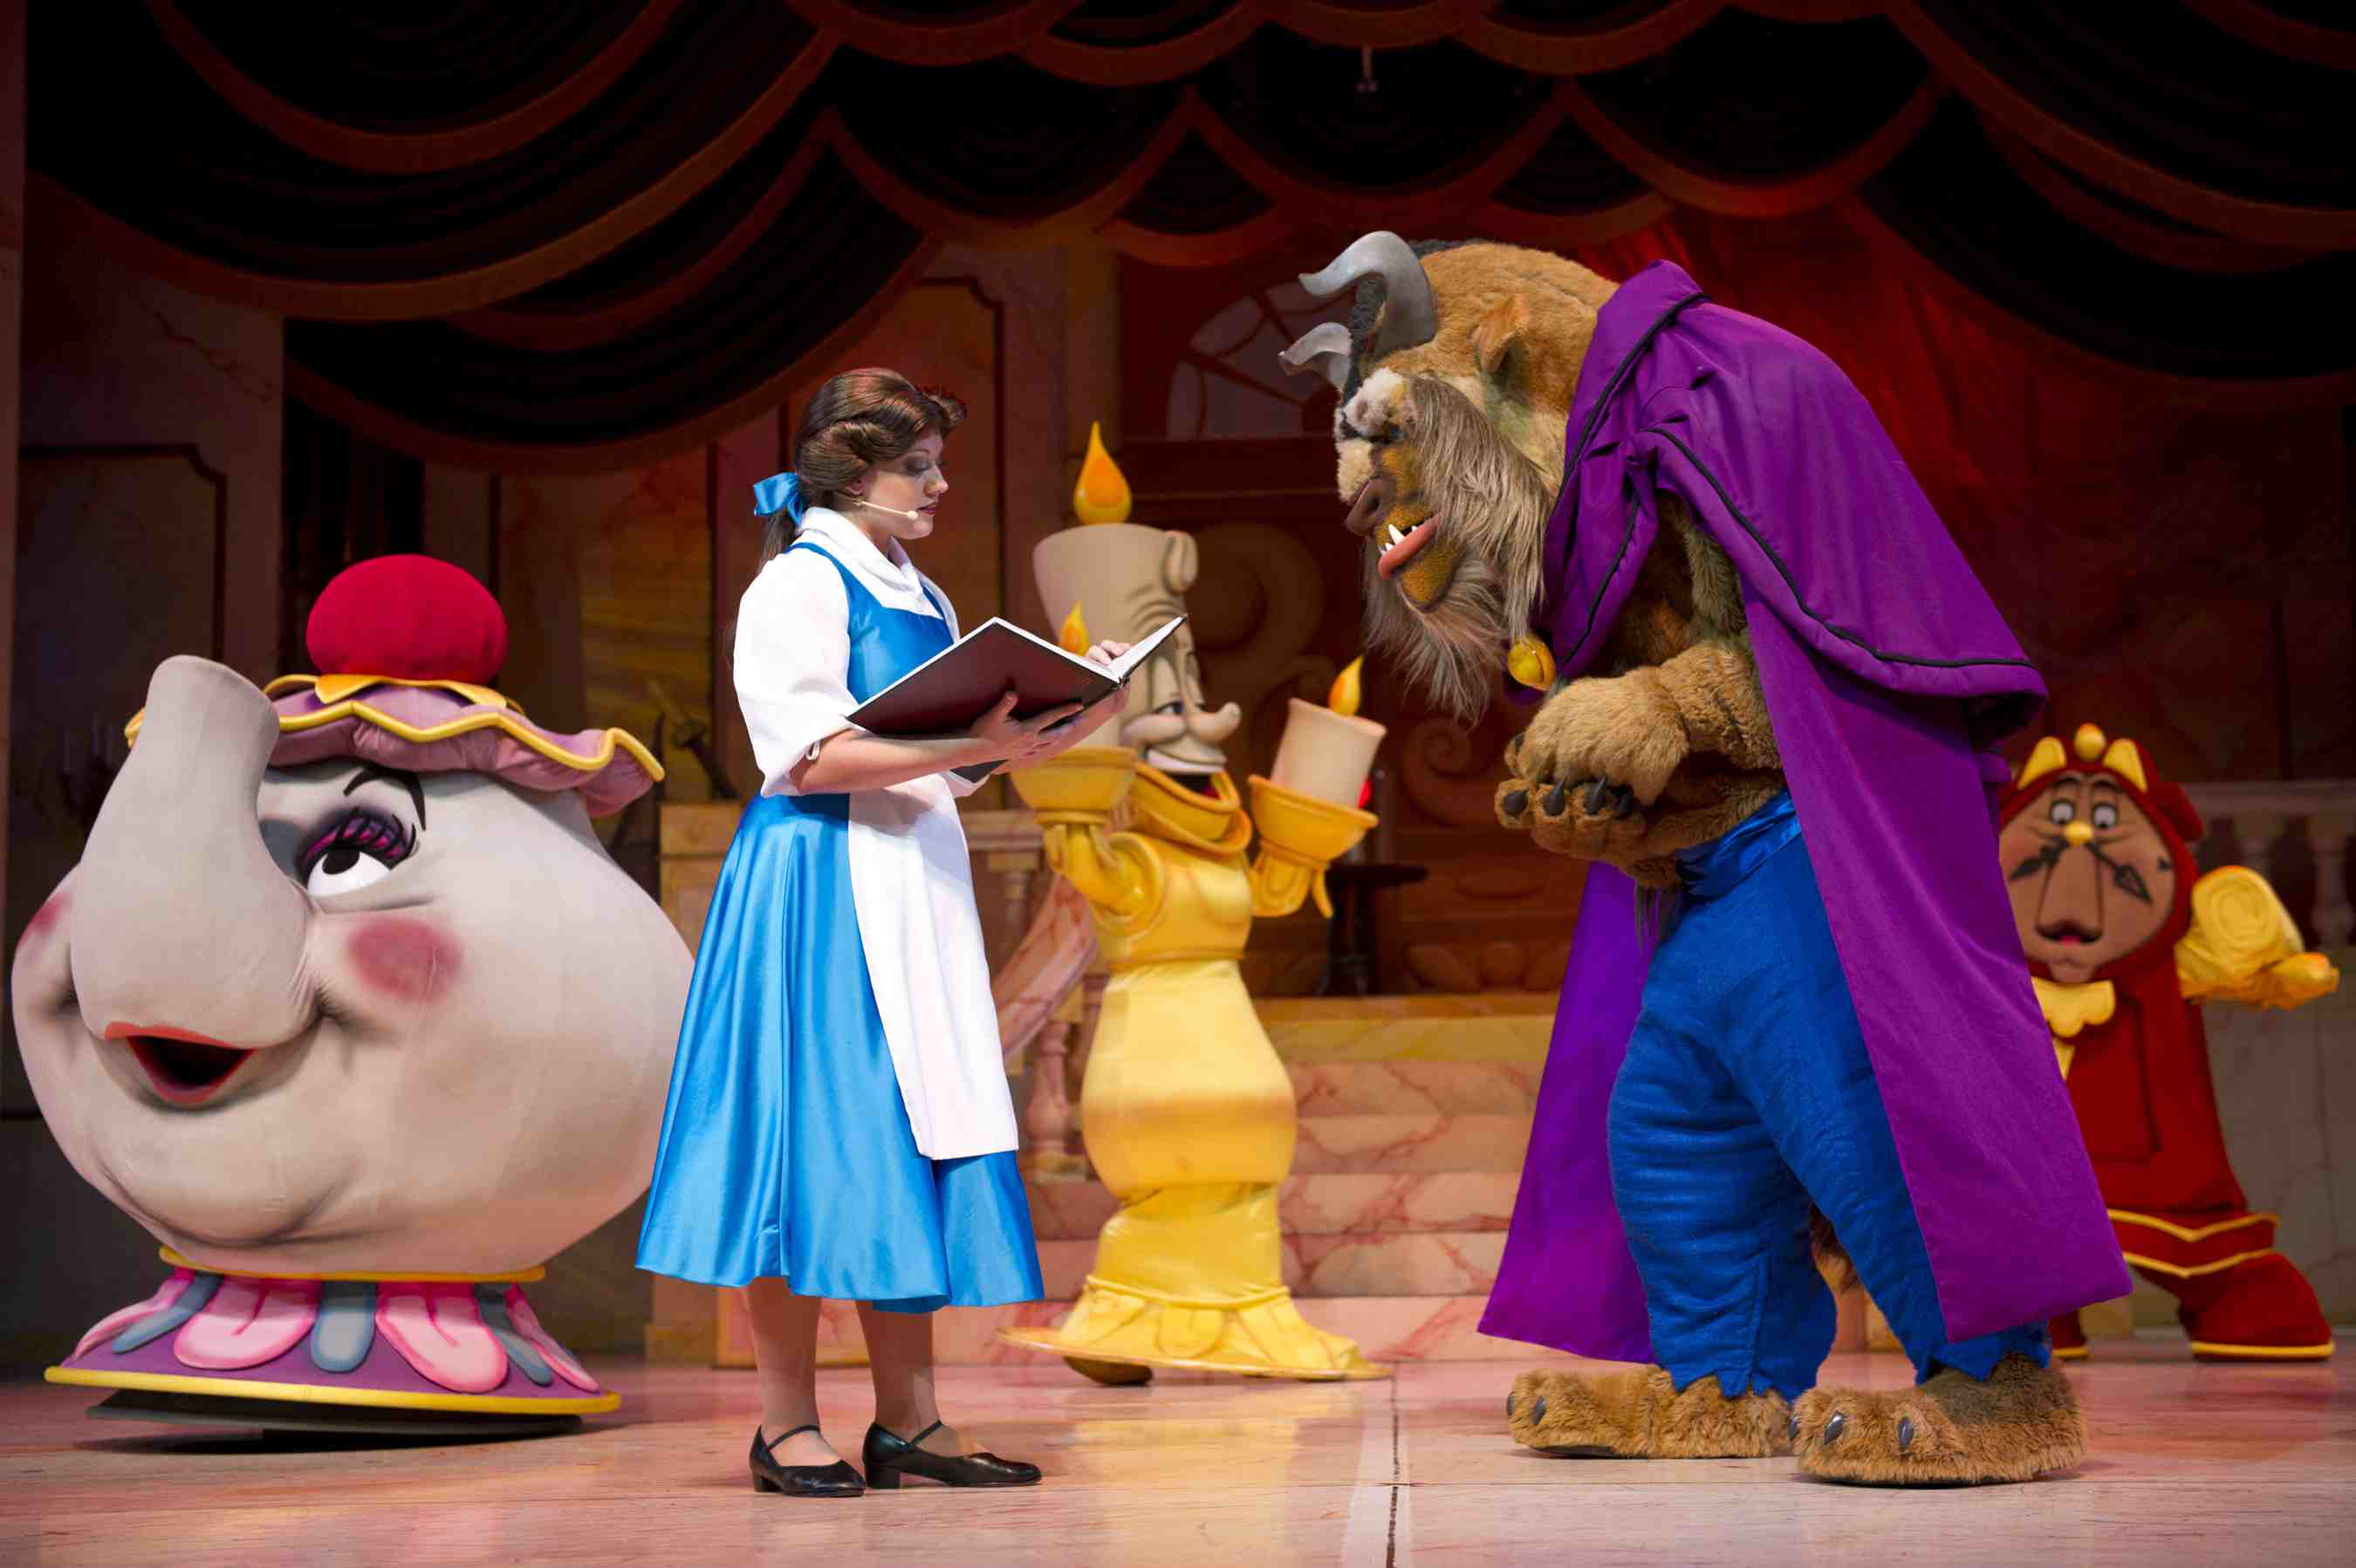 Beauty and the Beast Stage Show at Disney's Hollywood Studios